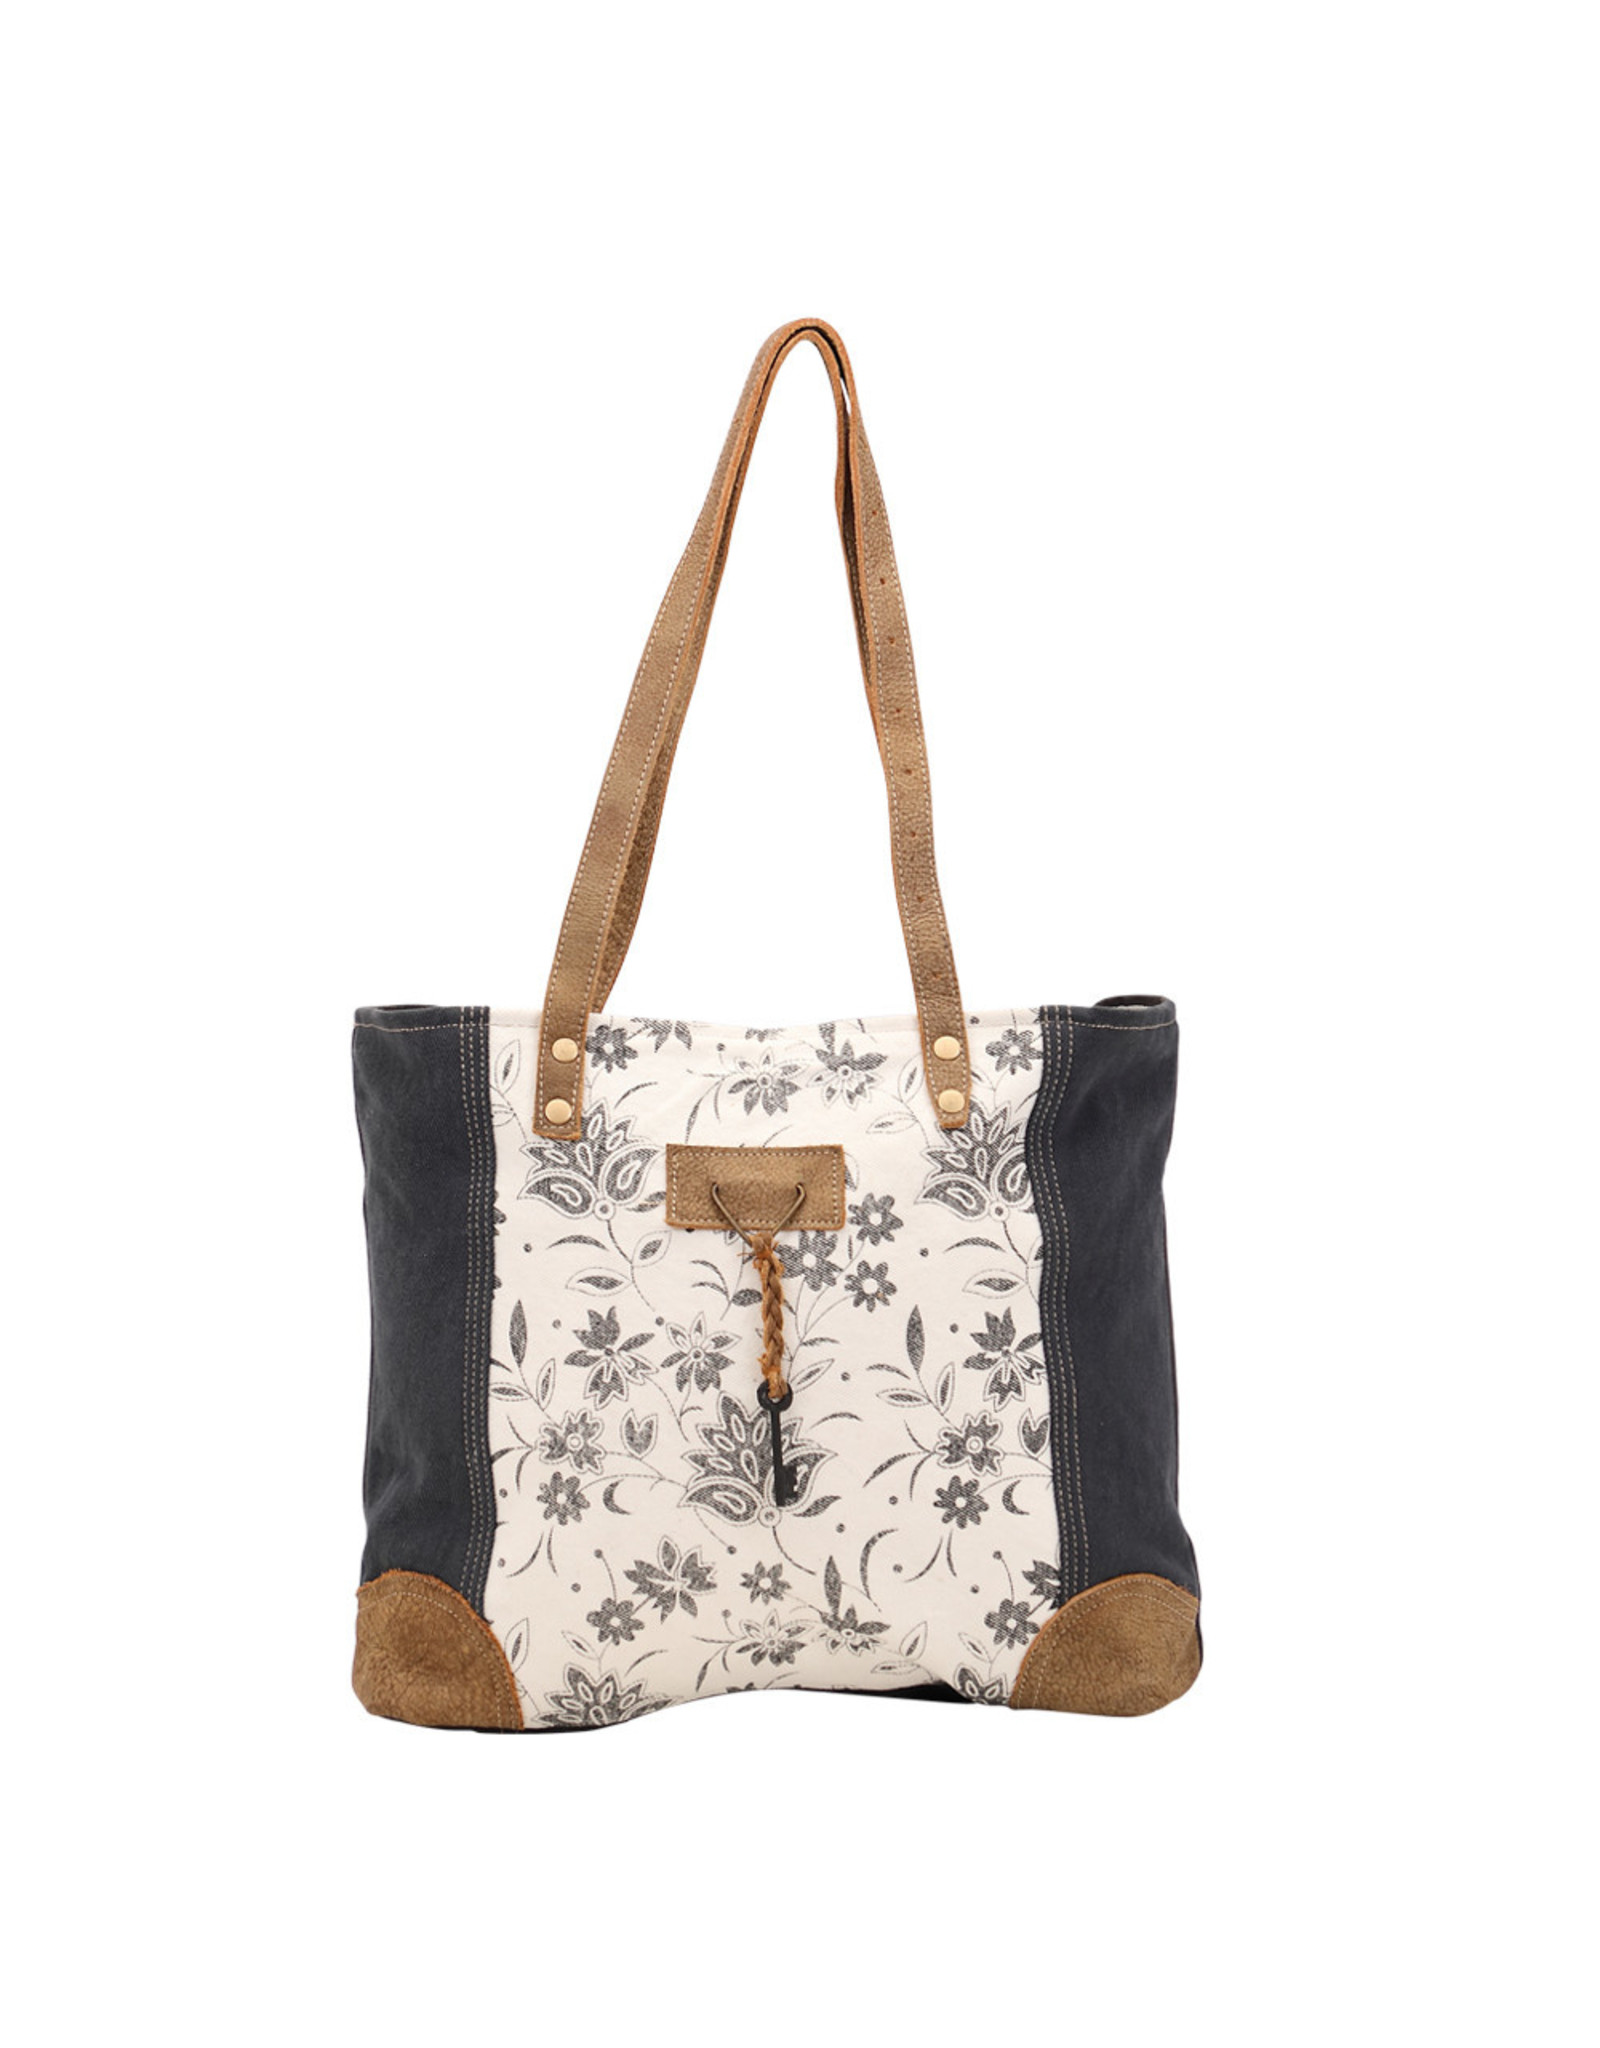 S 1456 Abstract Key Tote Bag And, press the buttons saying 'track phone' to find any smartphone's location without a. myra bags s 1456 abstract key tote bag